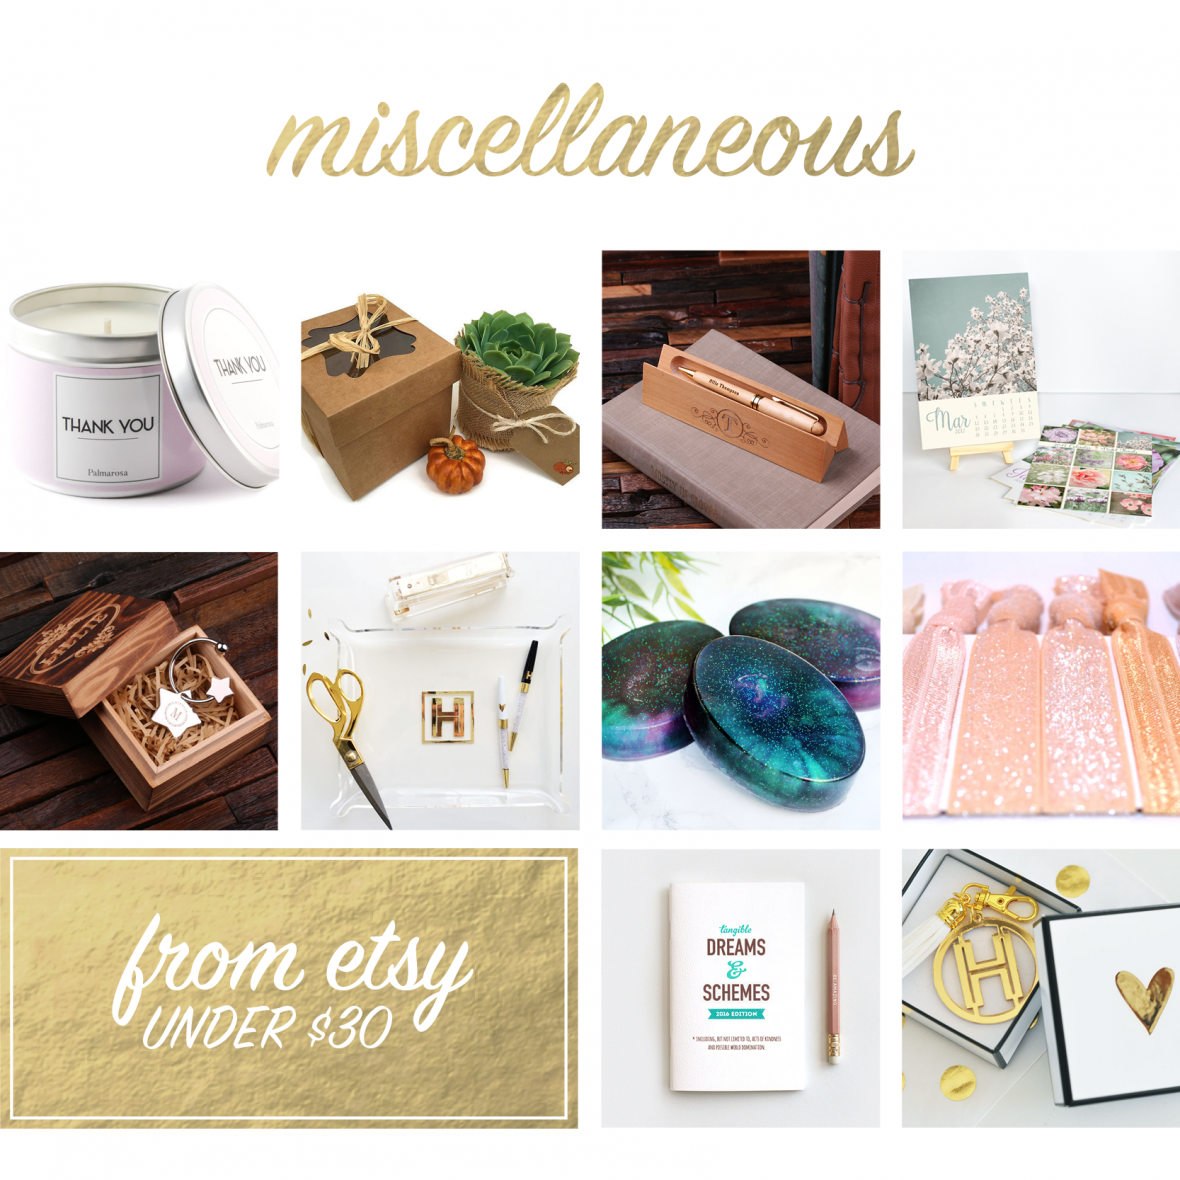 Handmade gifts for wedding vendors from Etsy